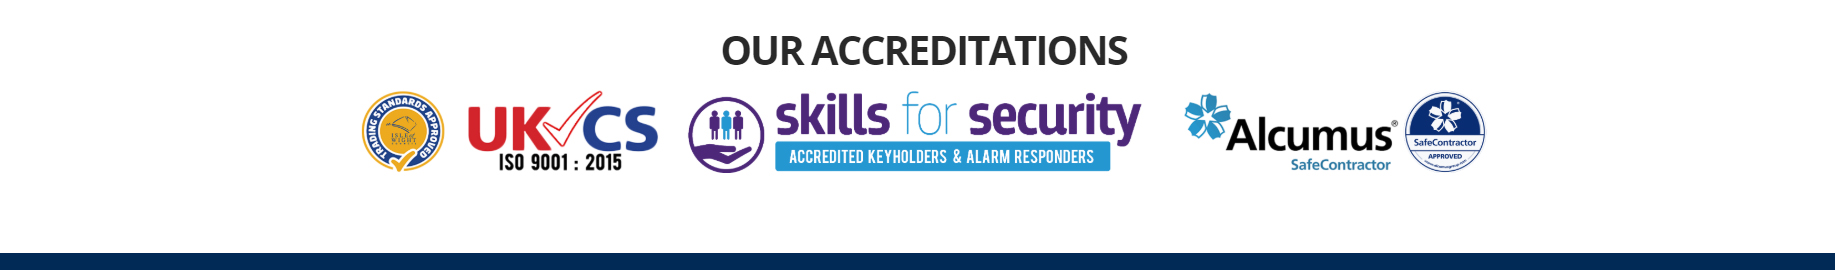 Vectis Group Security - Accreditations